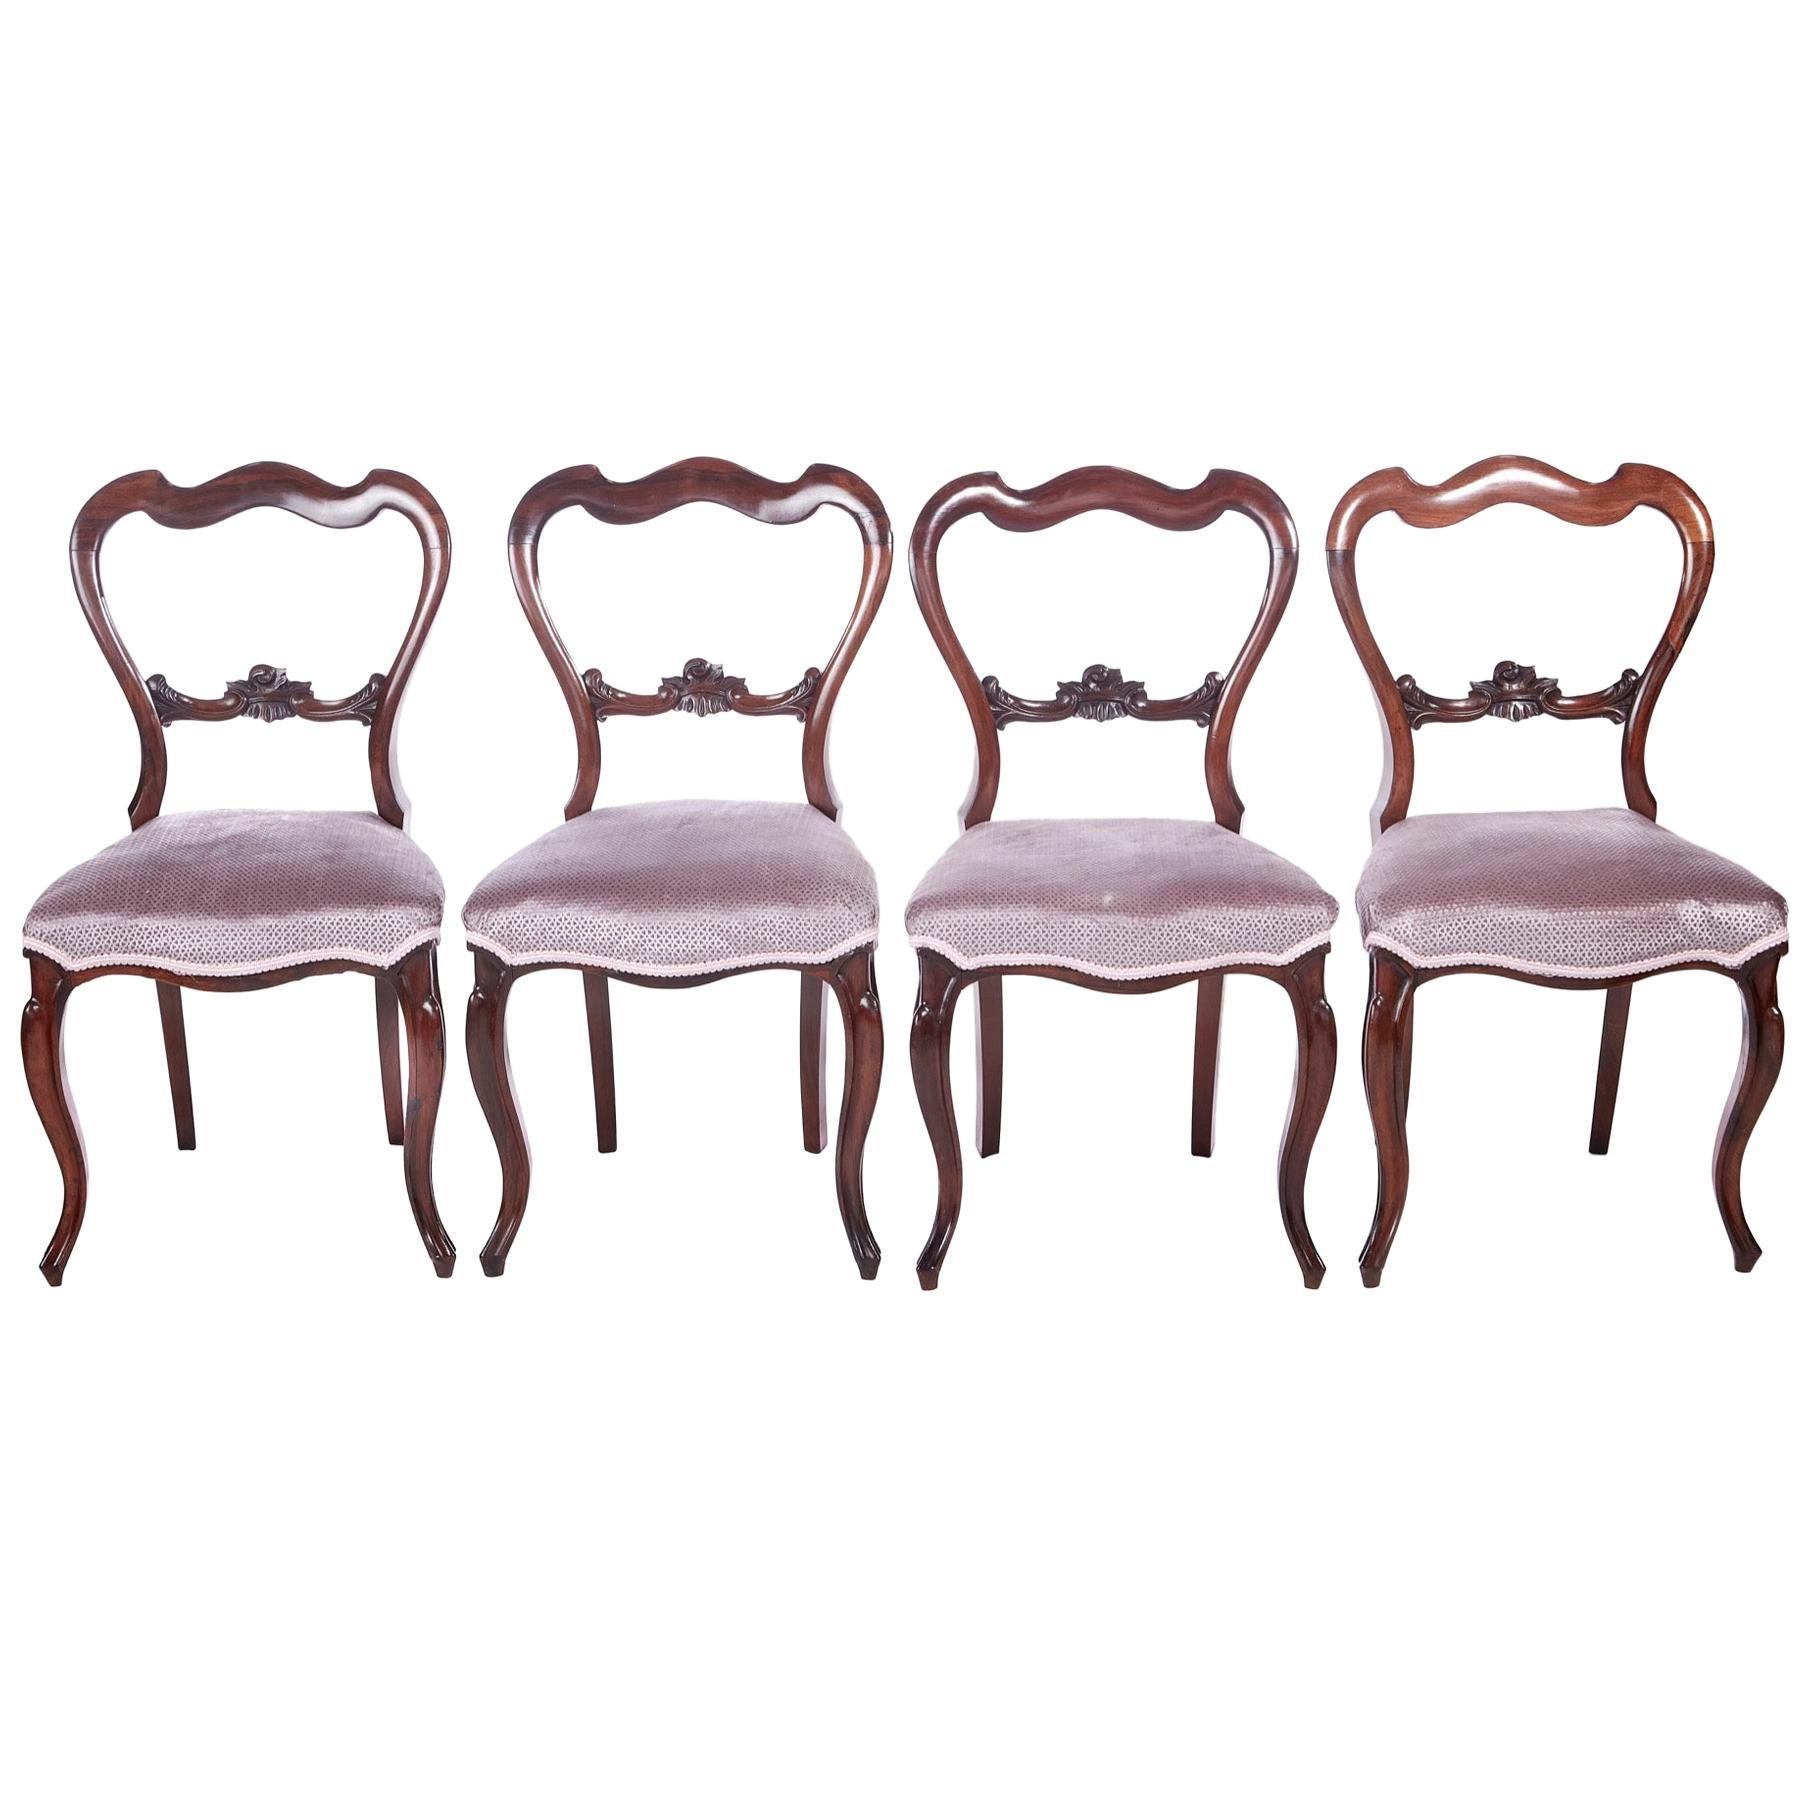 Set of 4 Victorian Rosewood Dining Chairs